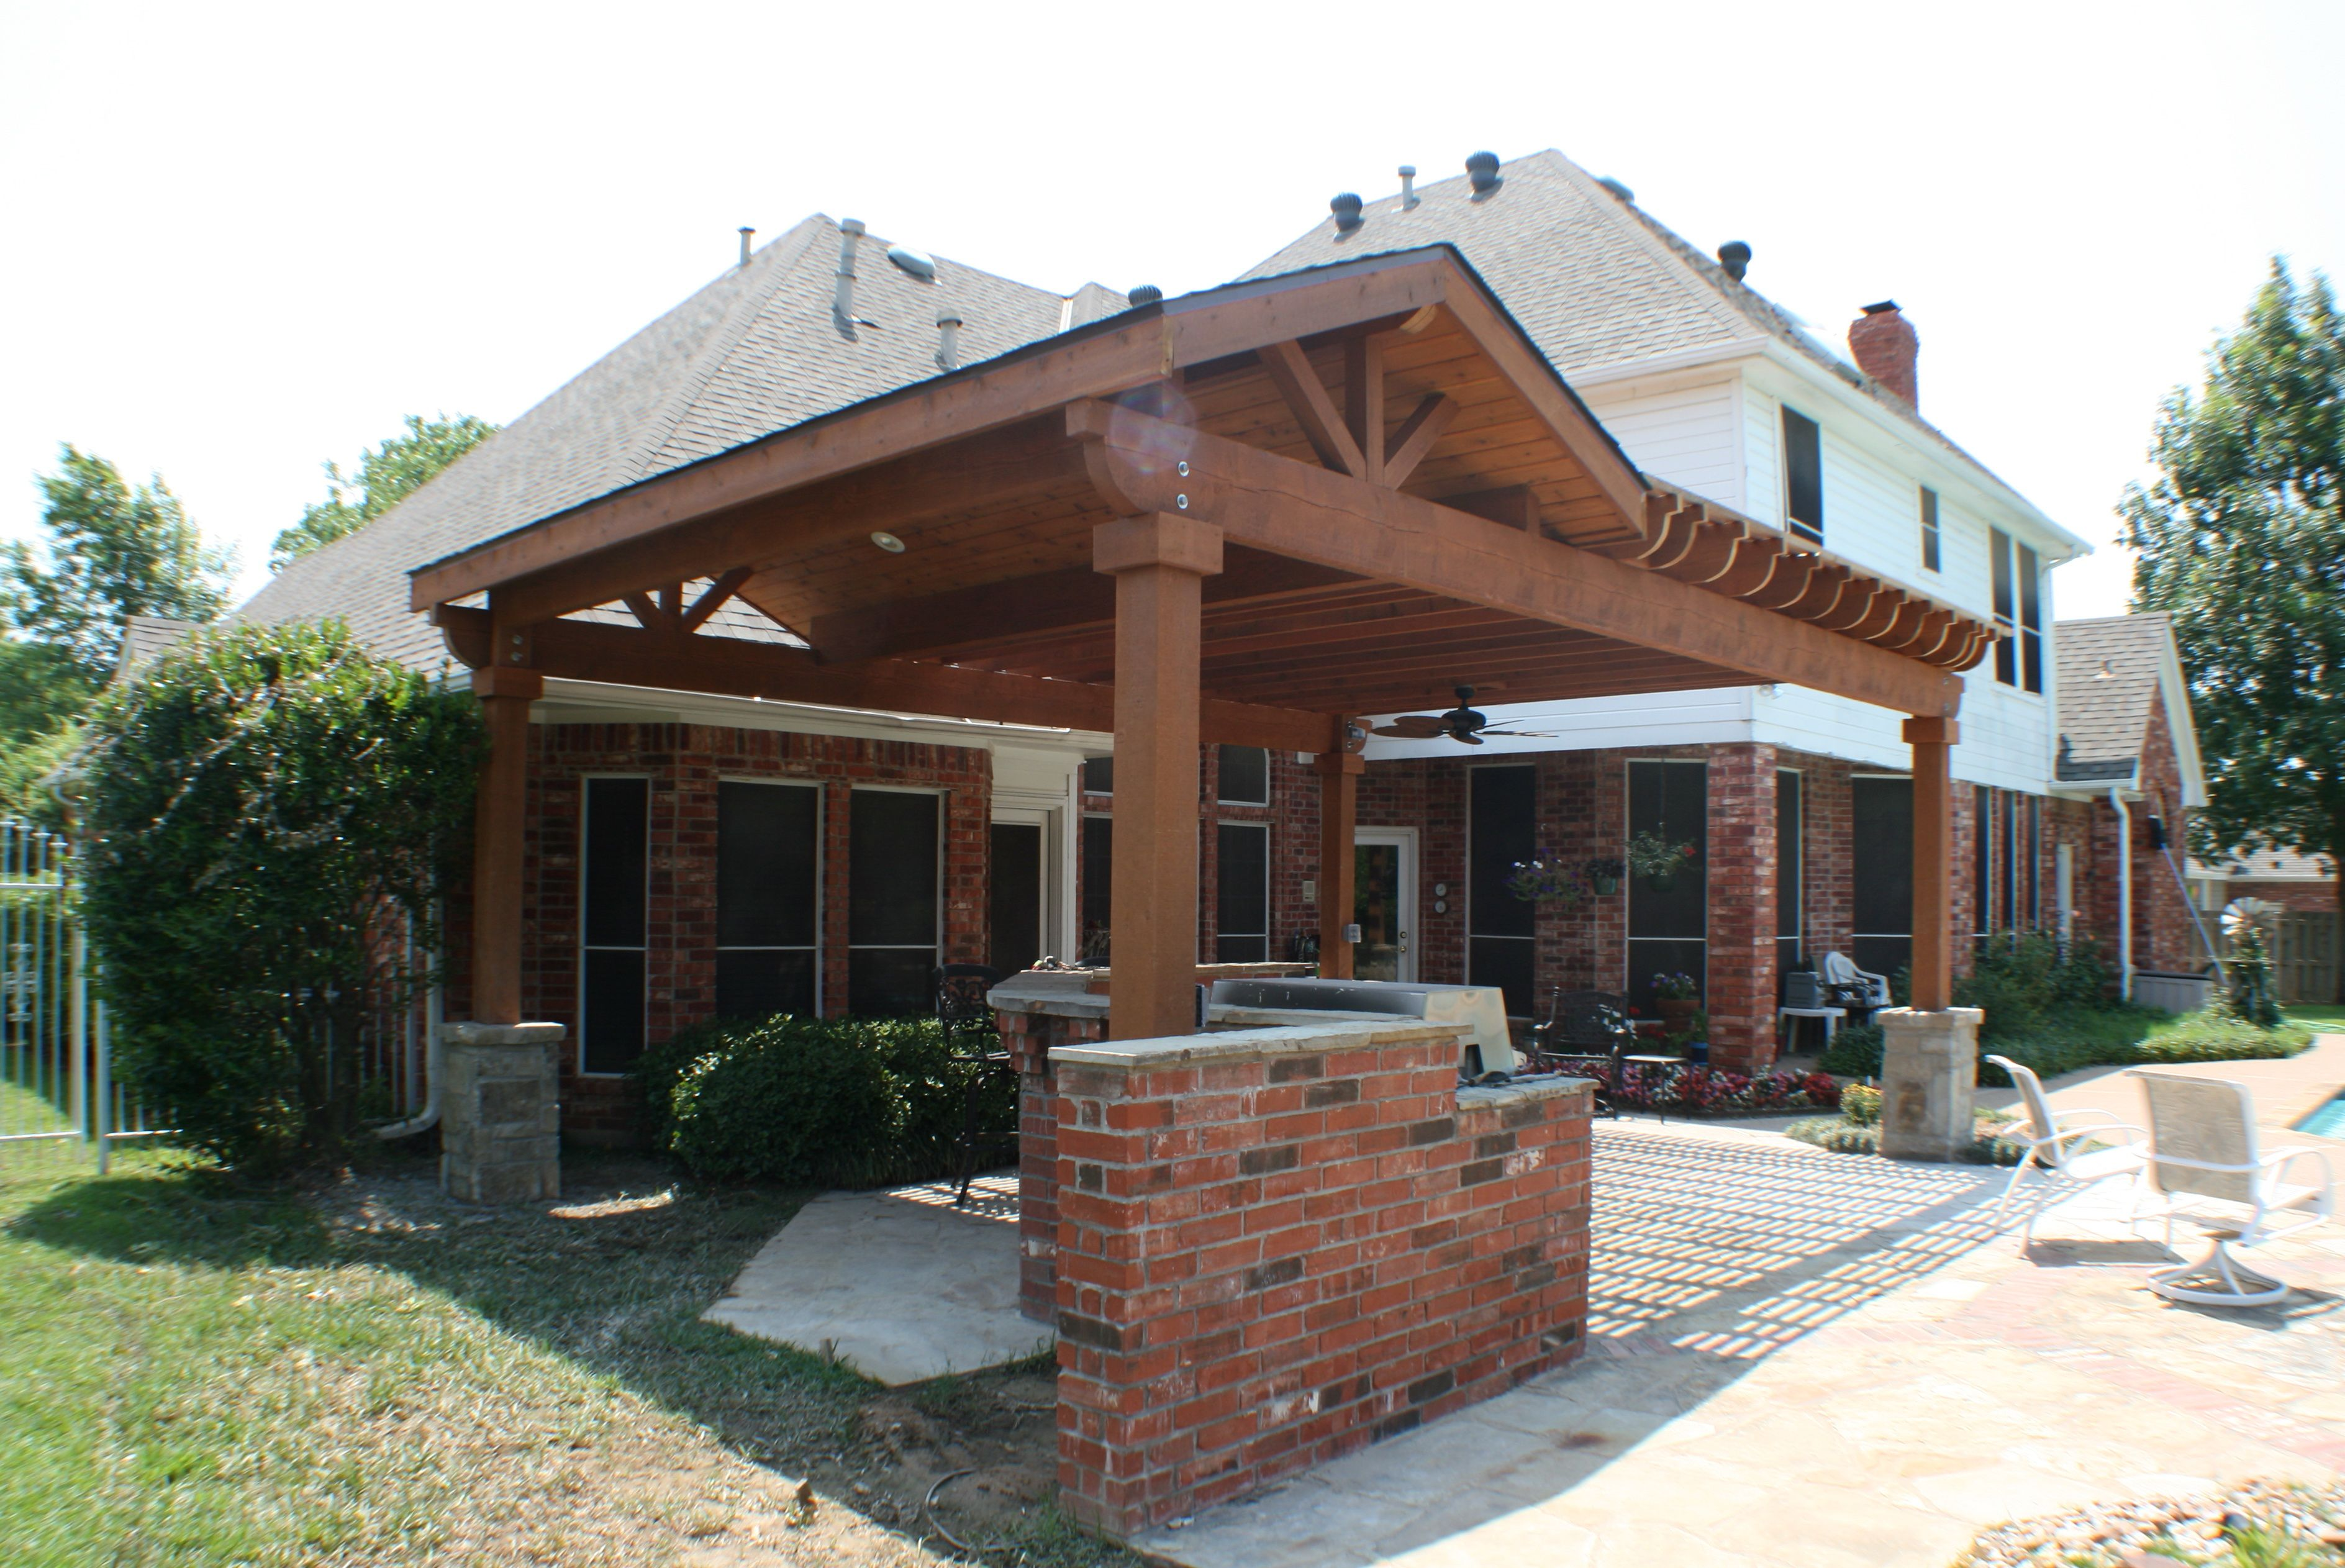 Attached covered patio ideas - Hip Roof Porch Plans Home Ideas Log